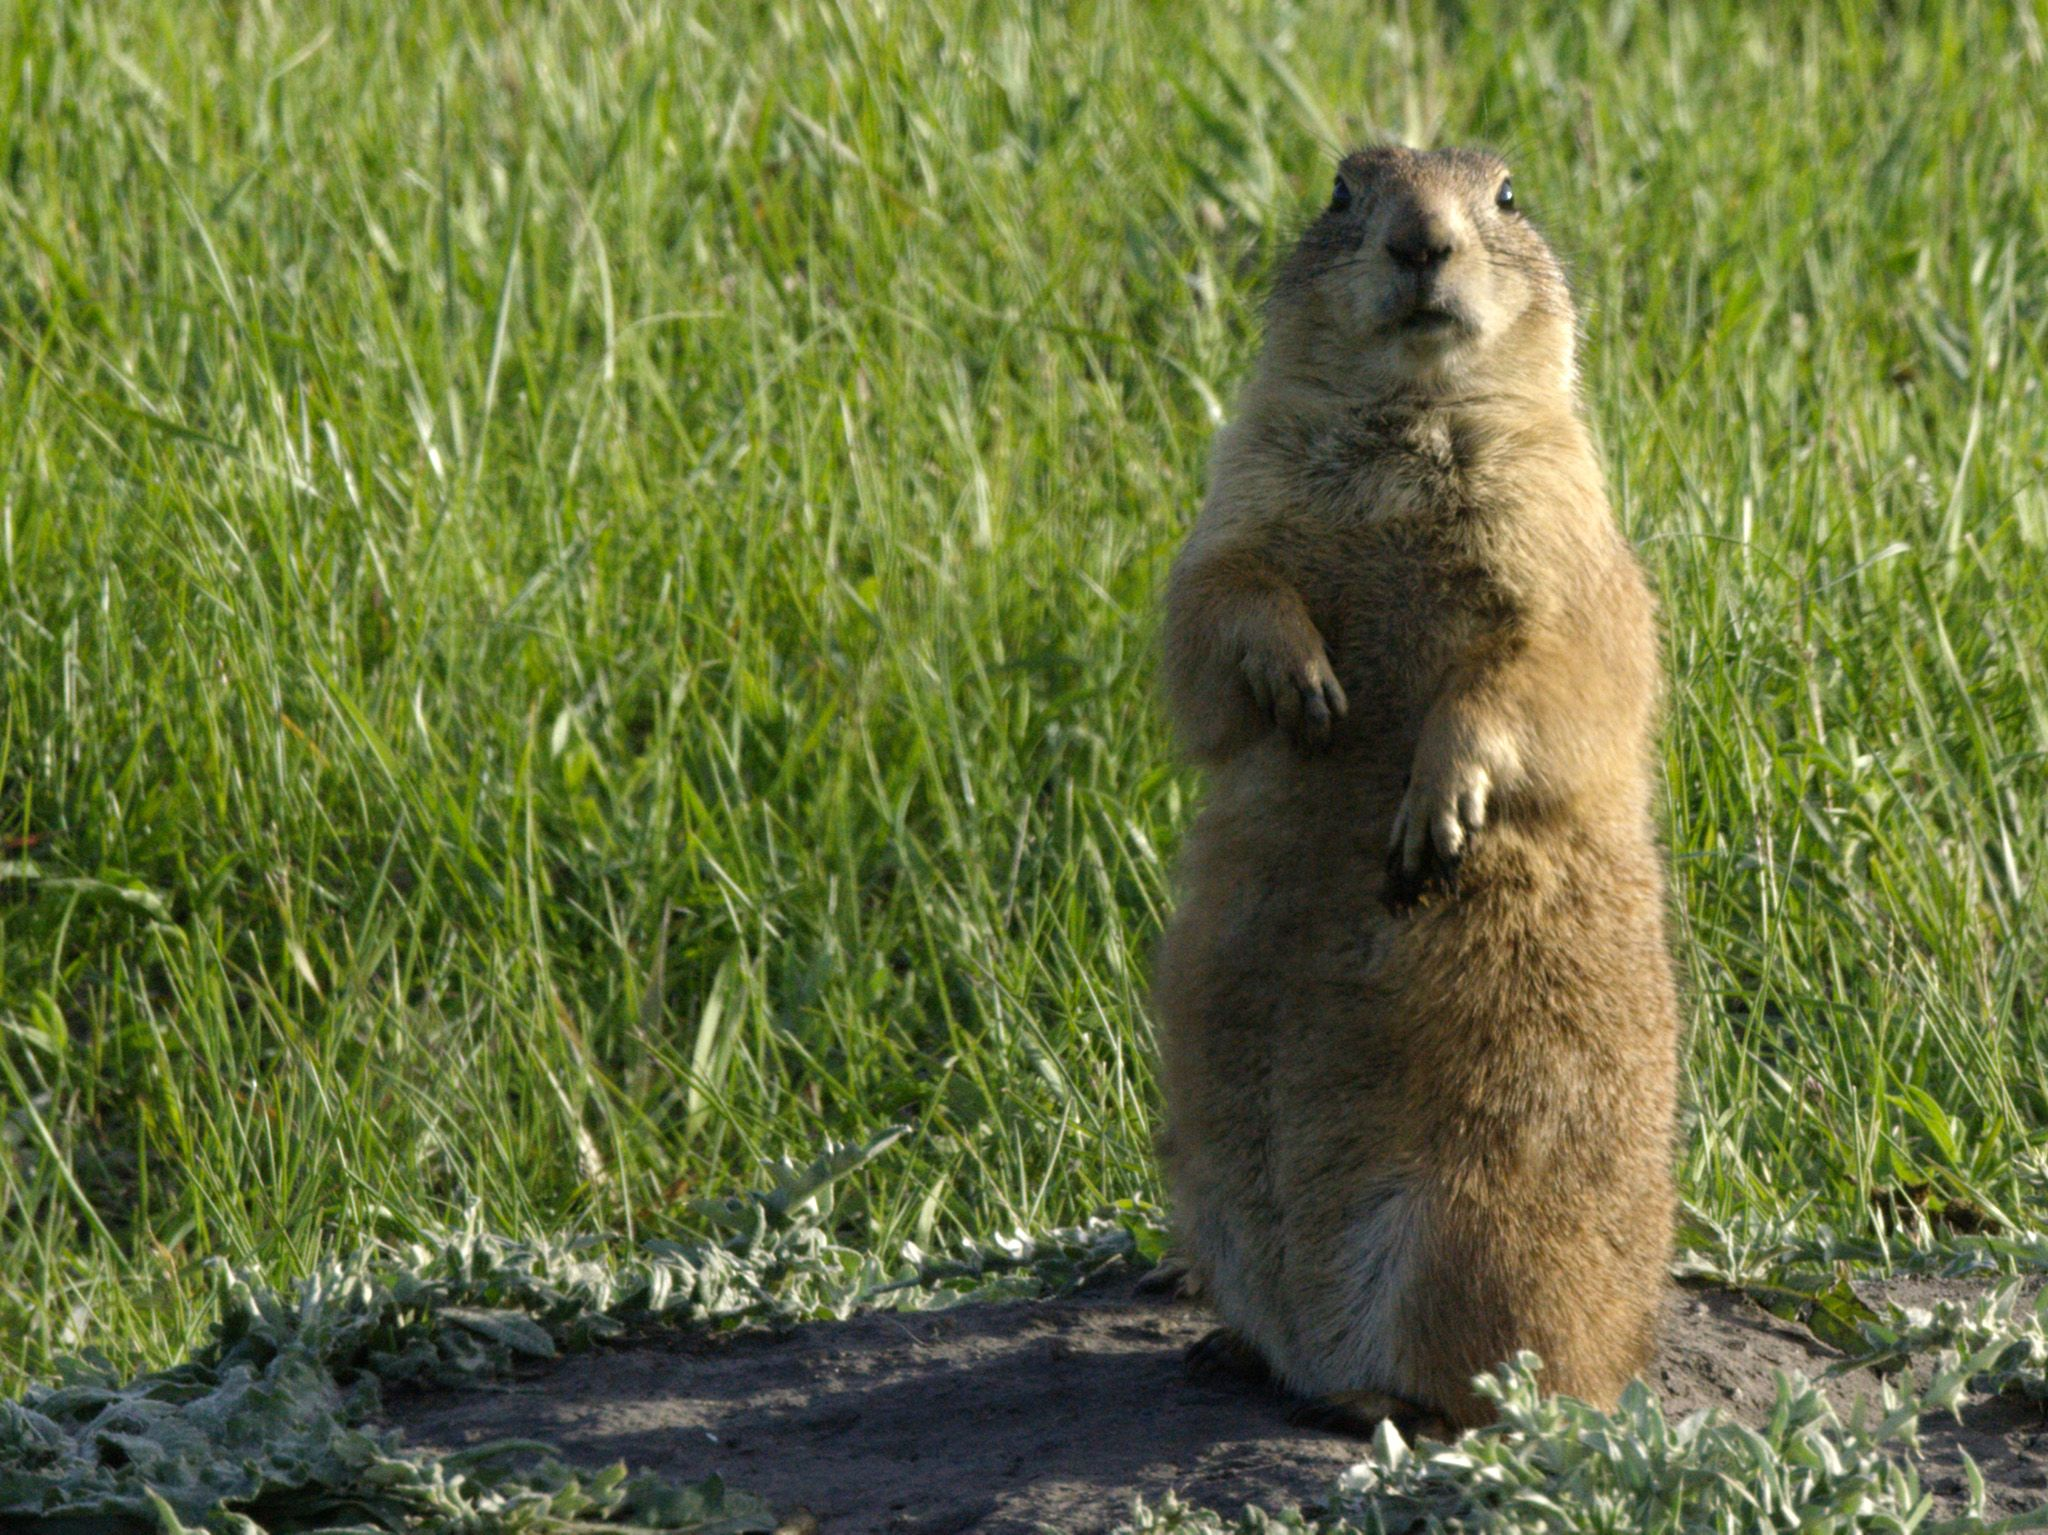 Custer State Park, SD:  A Prairie Dog on its hind legs keeping an eye out for predators. This... [Photo of the day - آوریل 2018]